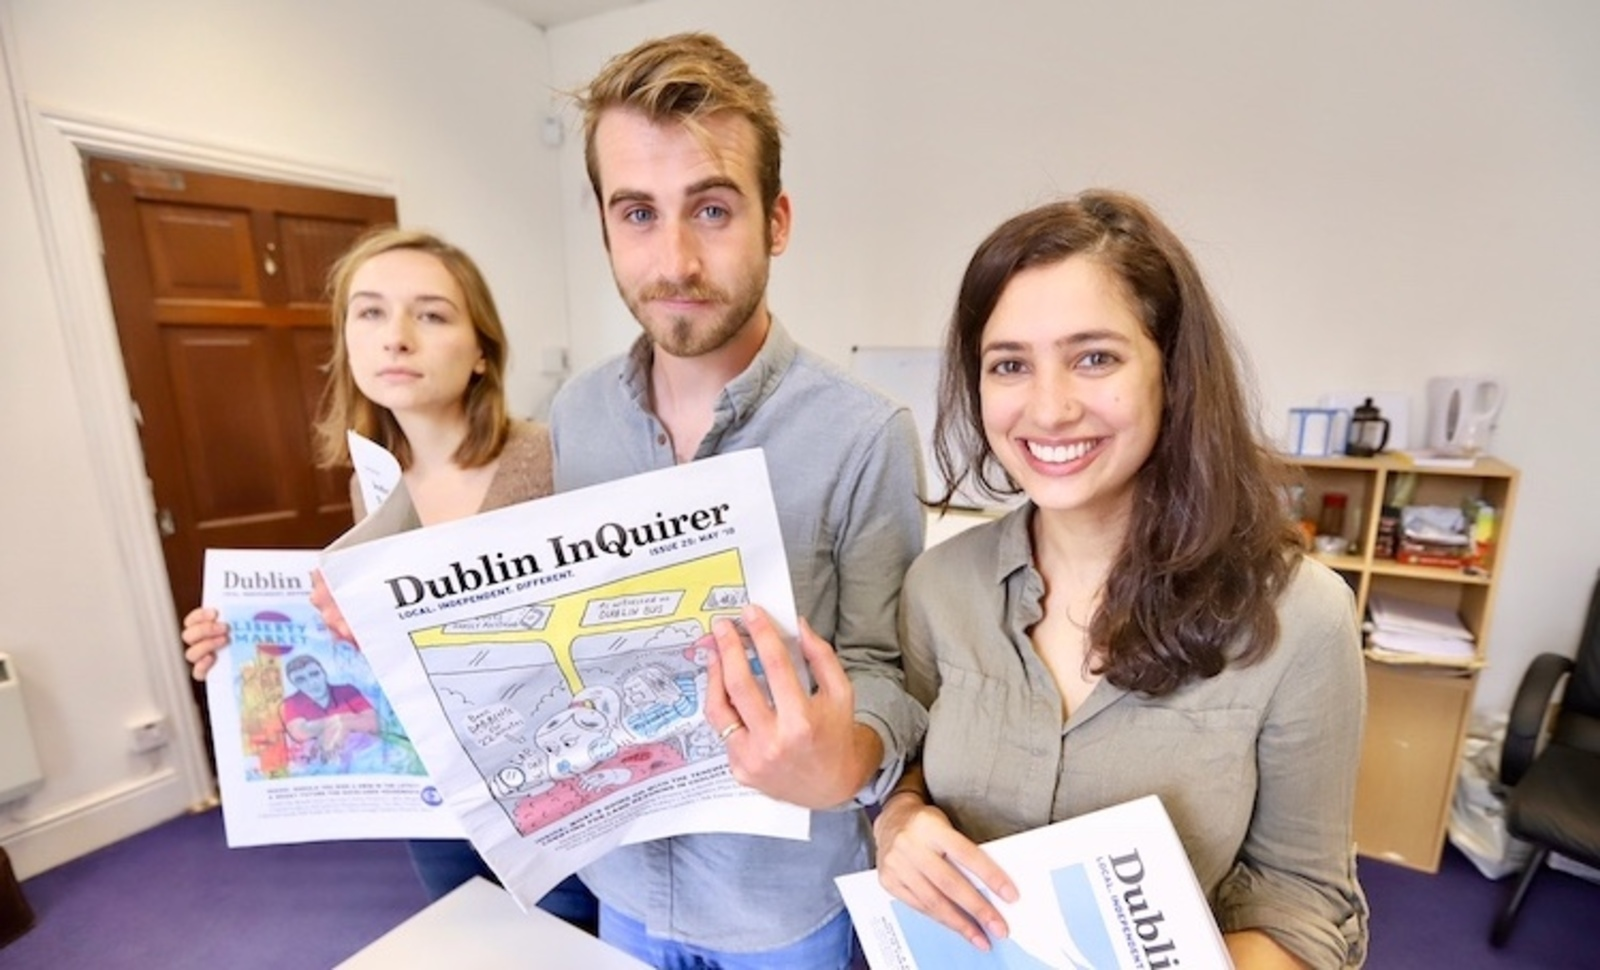 Managing editor Lois Kapila (right) and the Dublin Inquirer team (credit: Adrian Weckler)